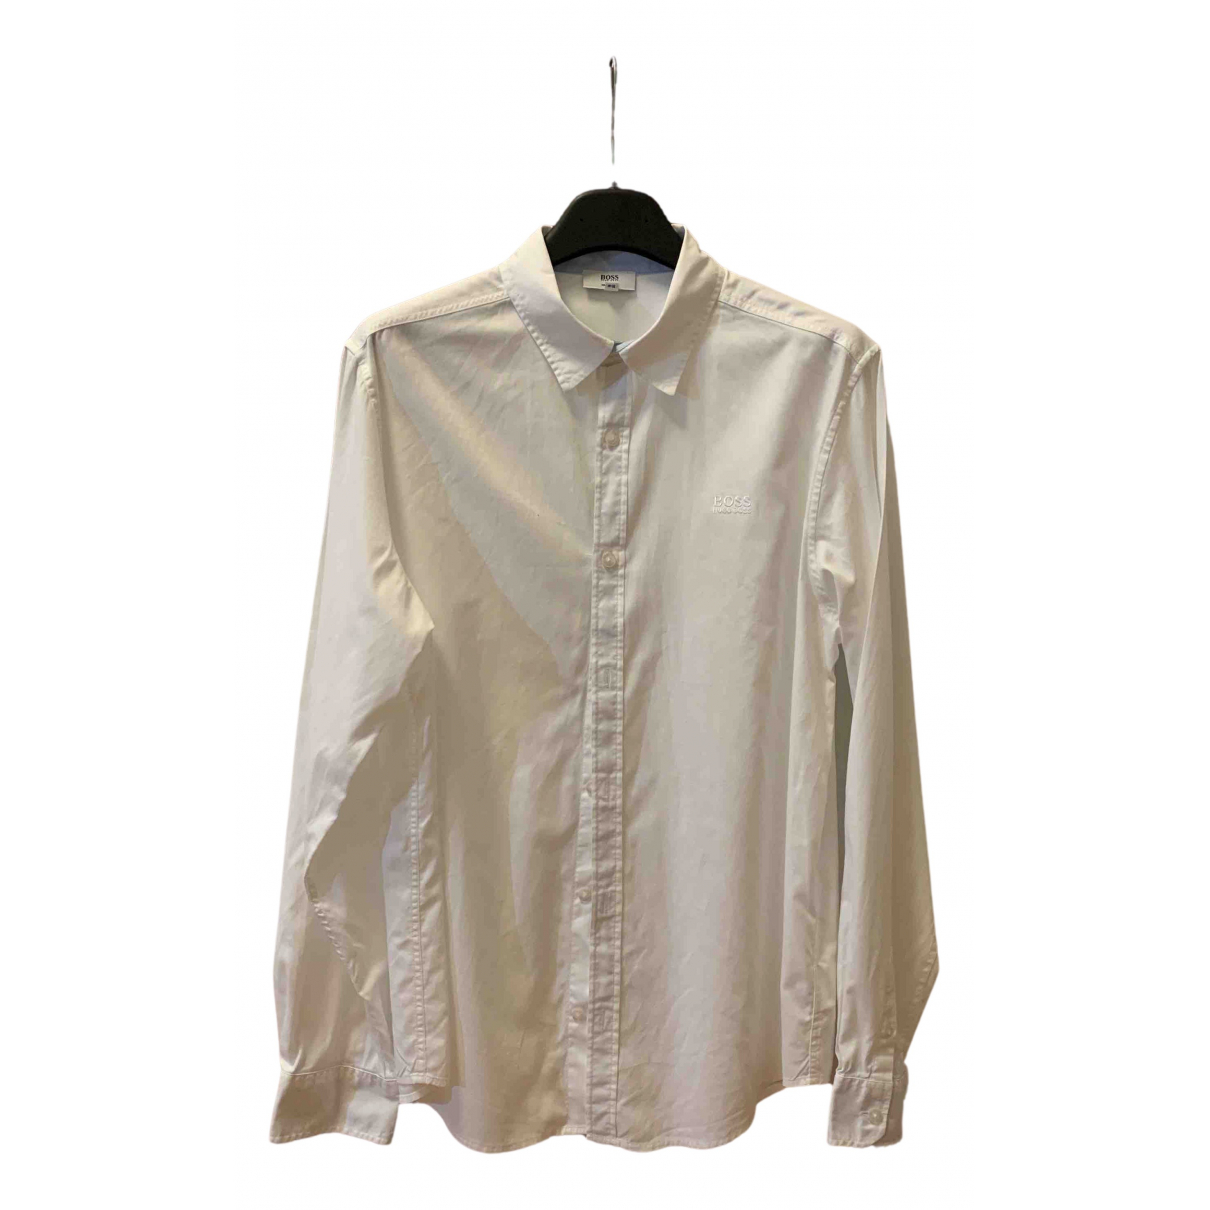 Boss N White Cotton  top for Kids 16 years - M UK